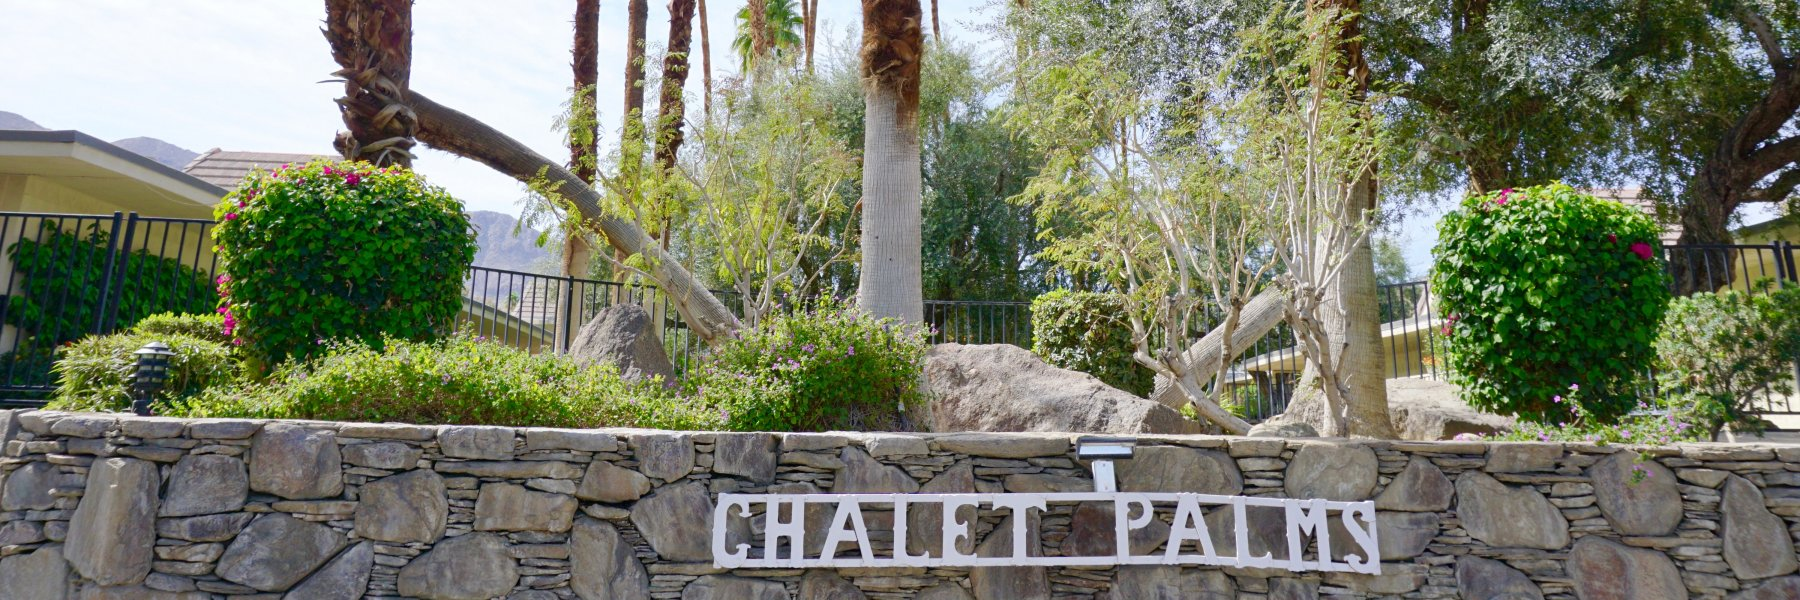 Magnesia Falls Cove is a community of homes in Rancho Mirage California